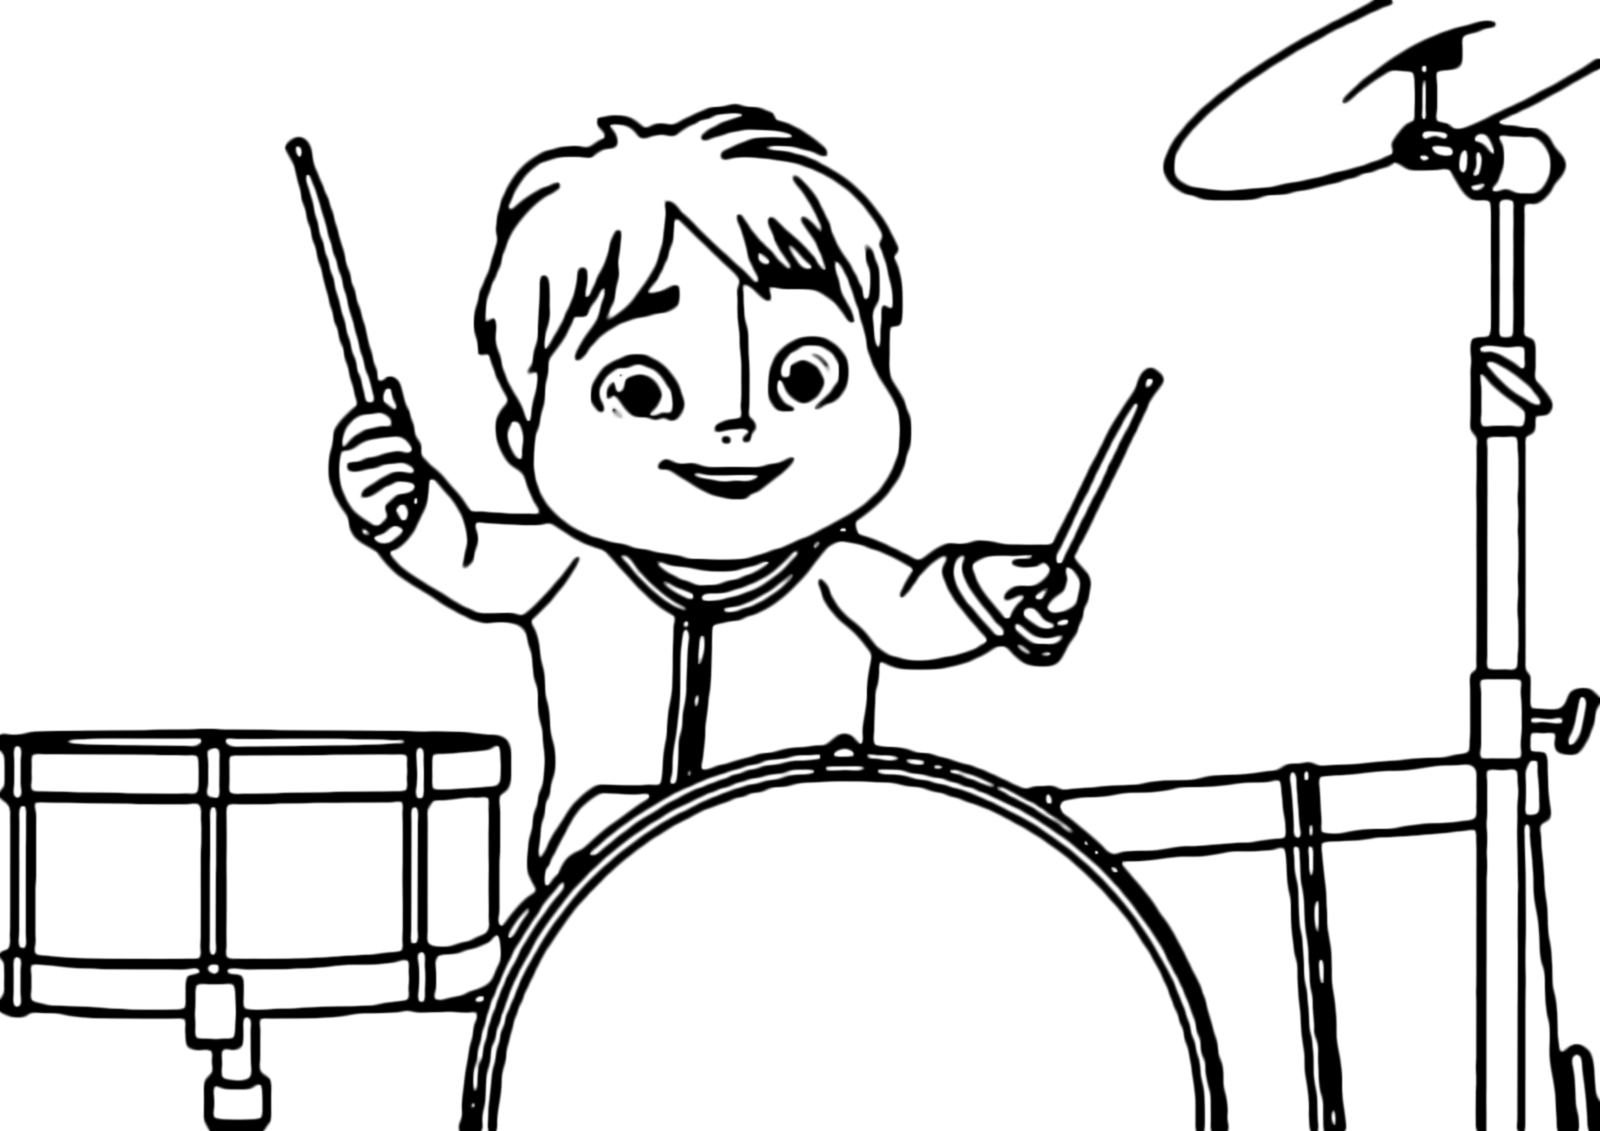 alvin and the chipmunks theodore plays drums